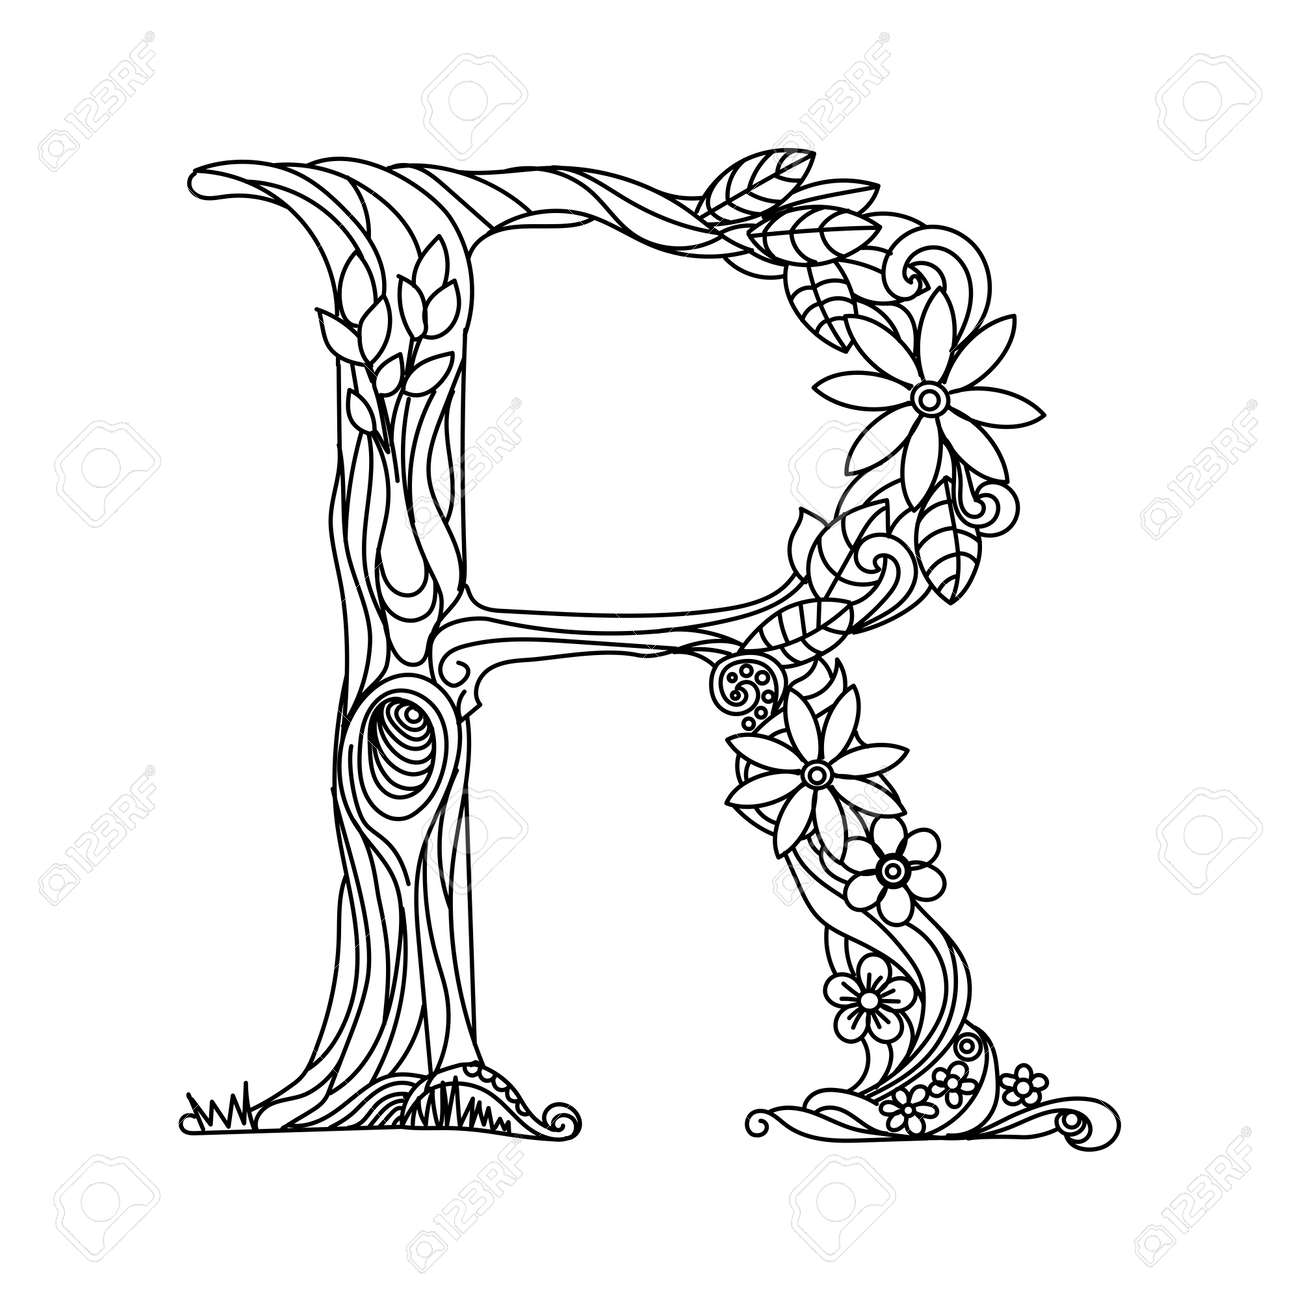 Floral Alphabet Letter Coloring Book For Adults Illustration ...